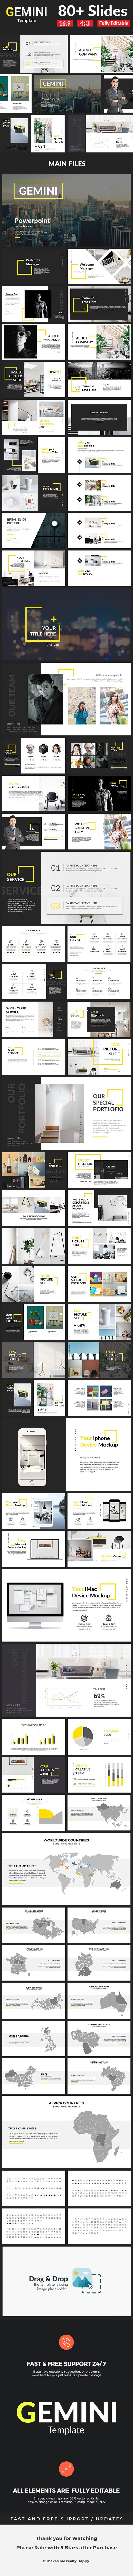 Gemini - Creative Powerpoint Template. Download here: https://graphicriver.net/item/gemini-creative-powerpoint-template/17088046?ref=ksioks